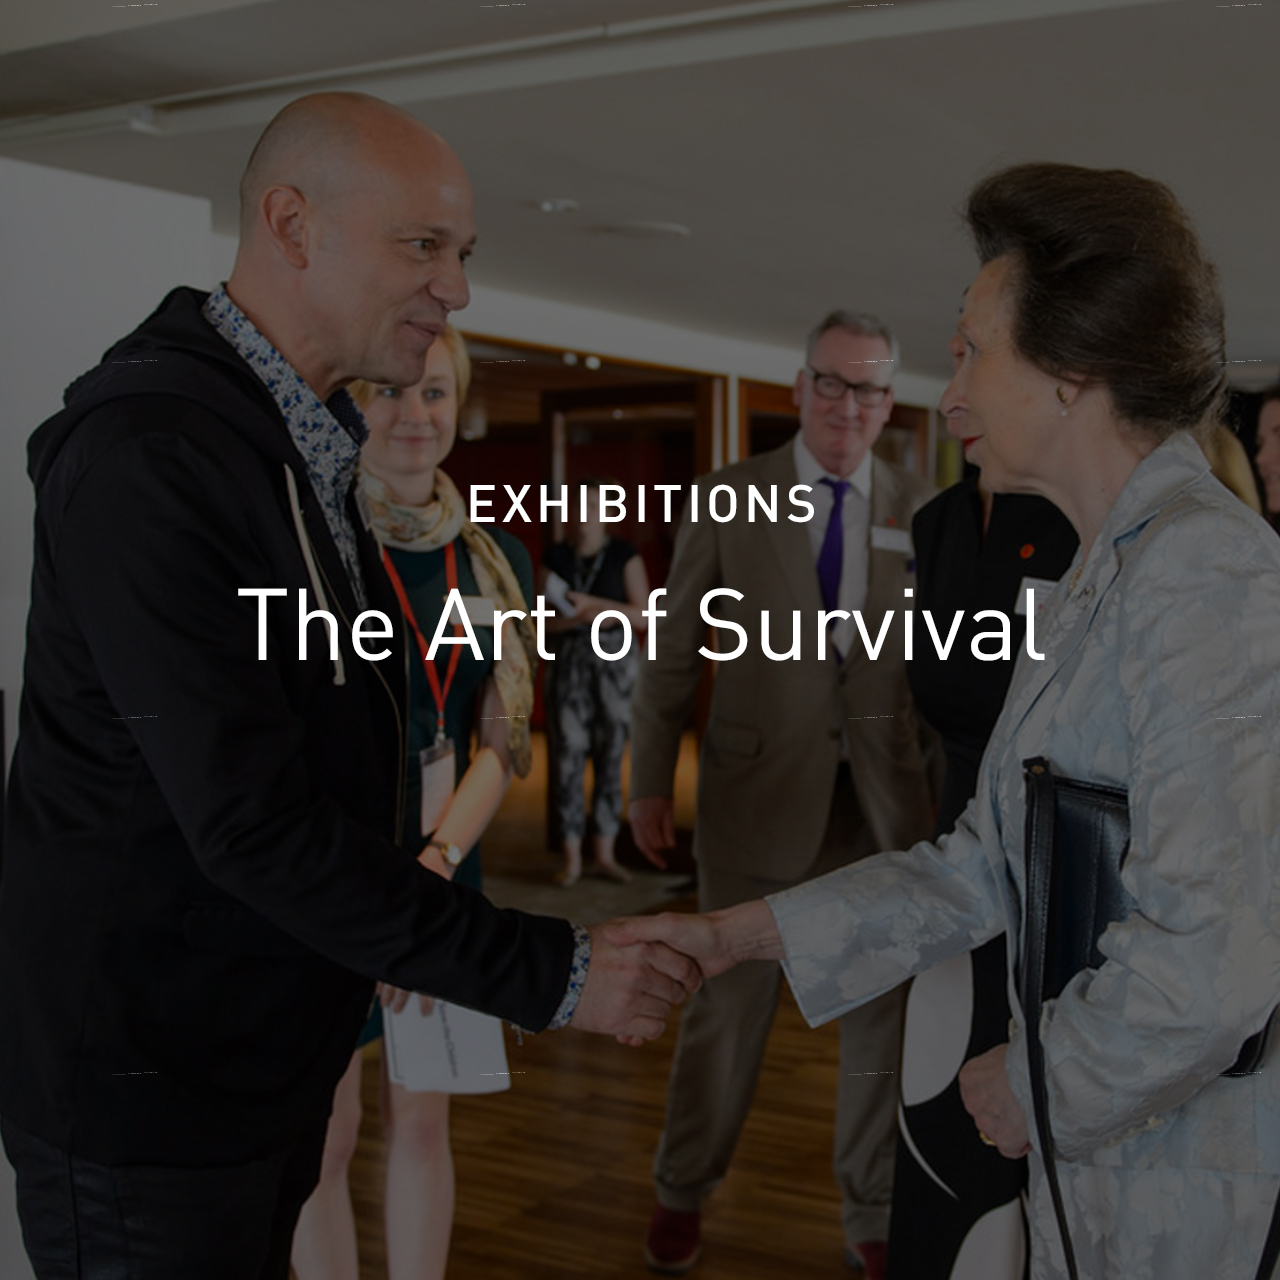 new_c_The Art of Survival - Exhibitions